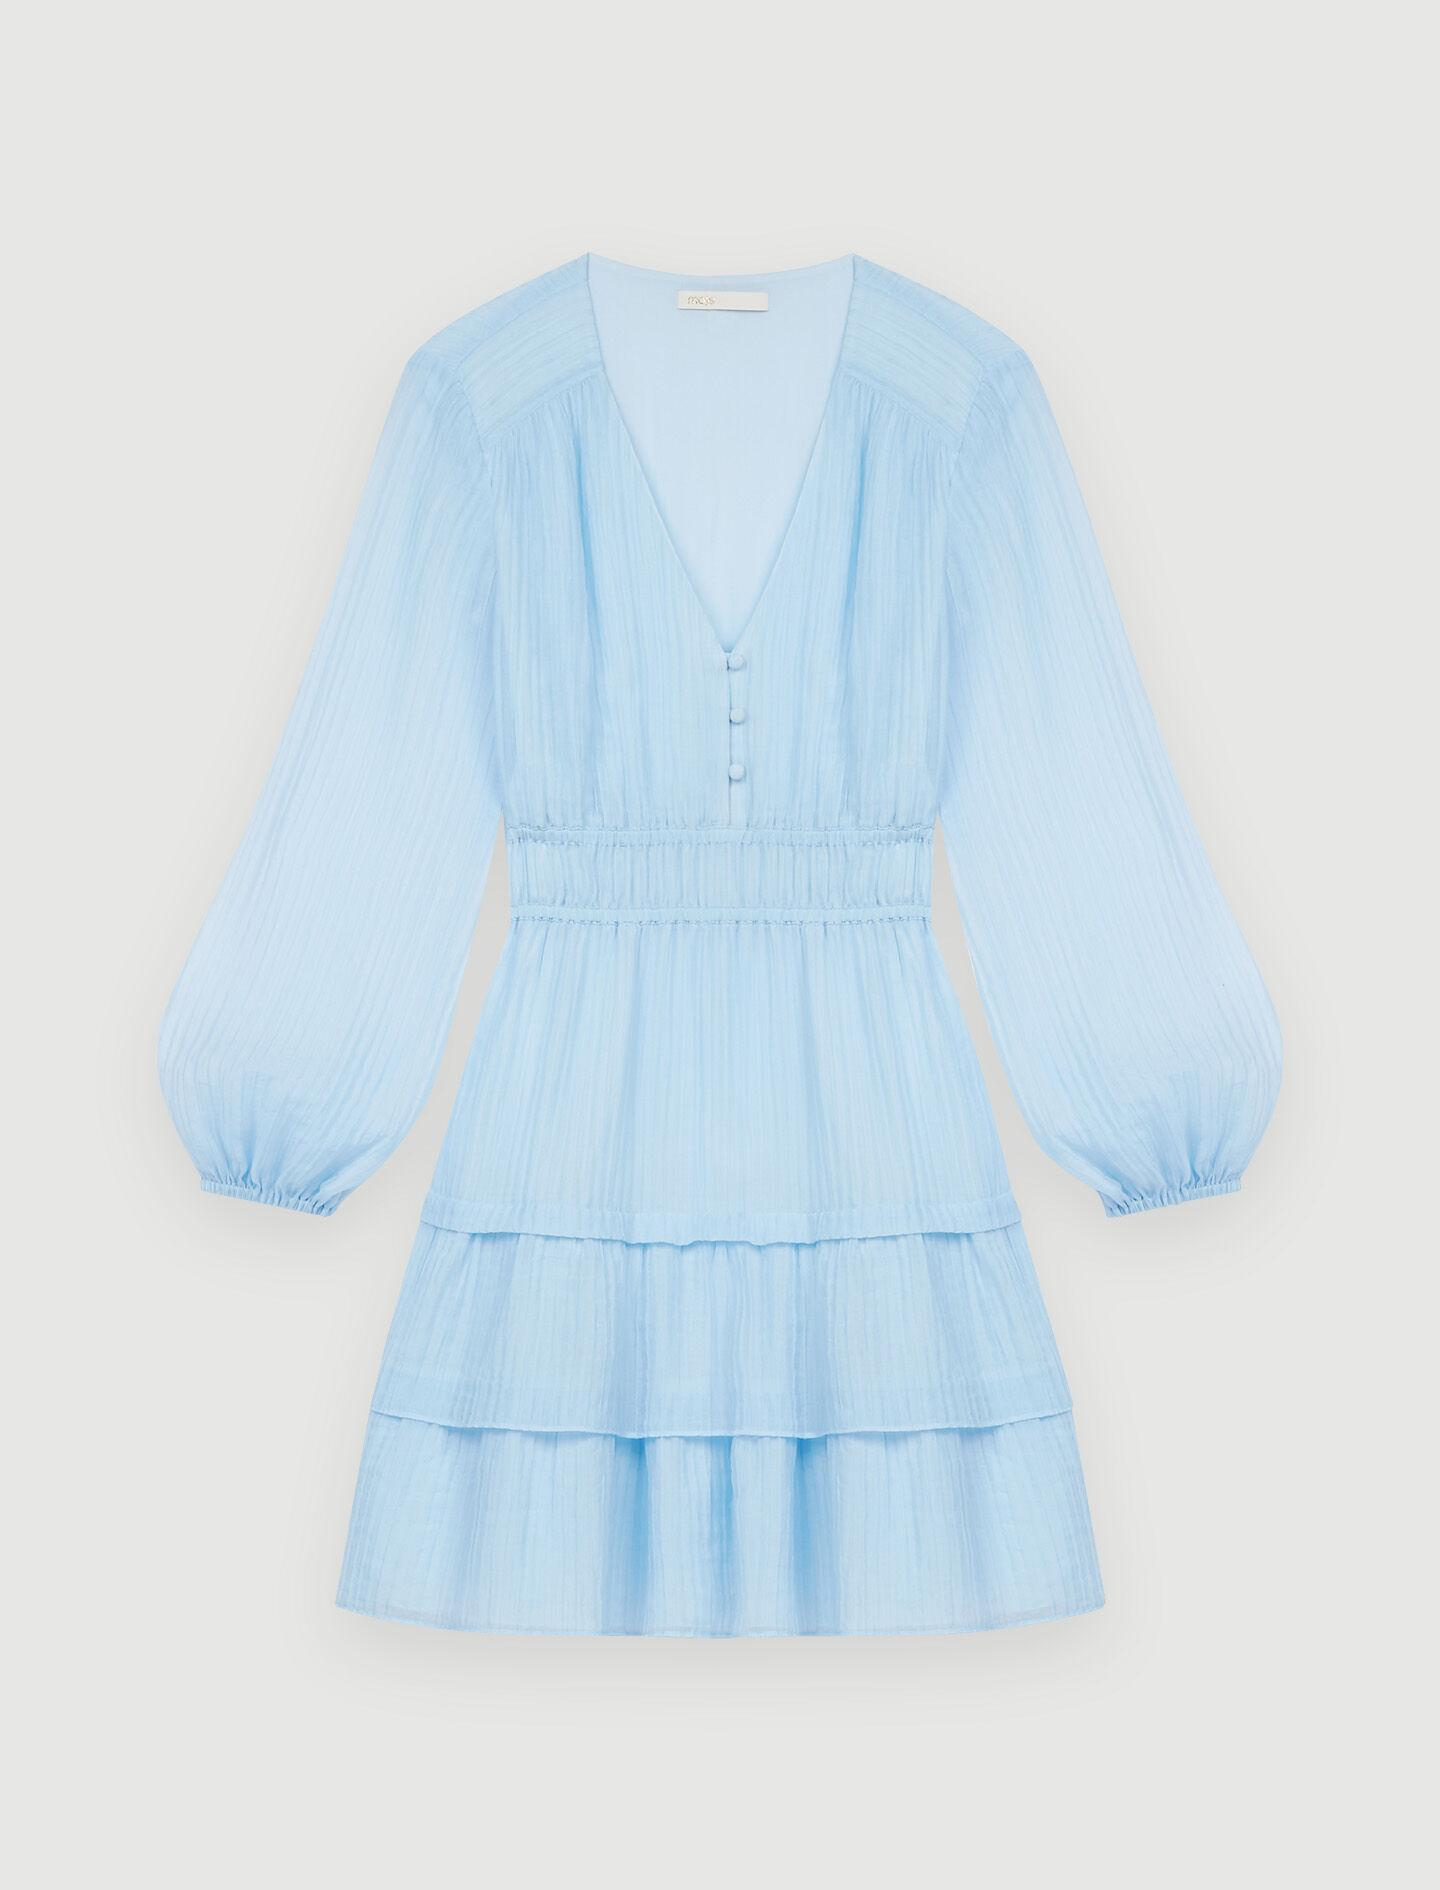 CRINKLE-EFFECT VOILE DRESS WITH RUFFLES 5